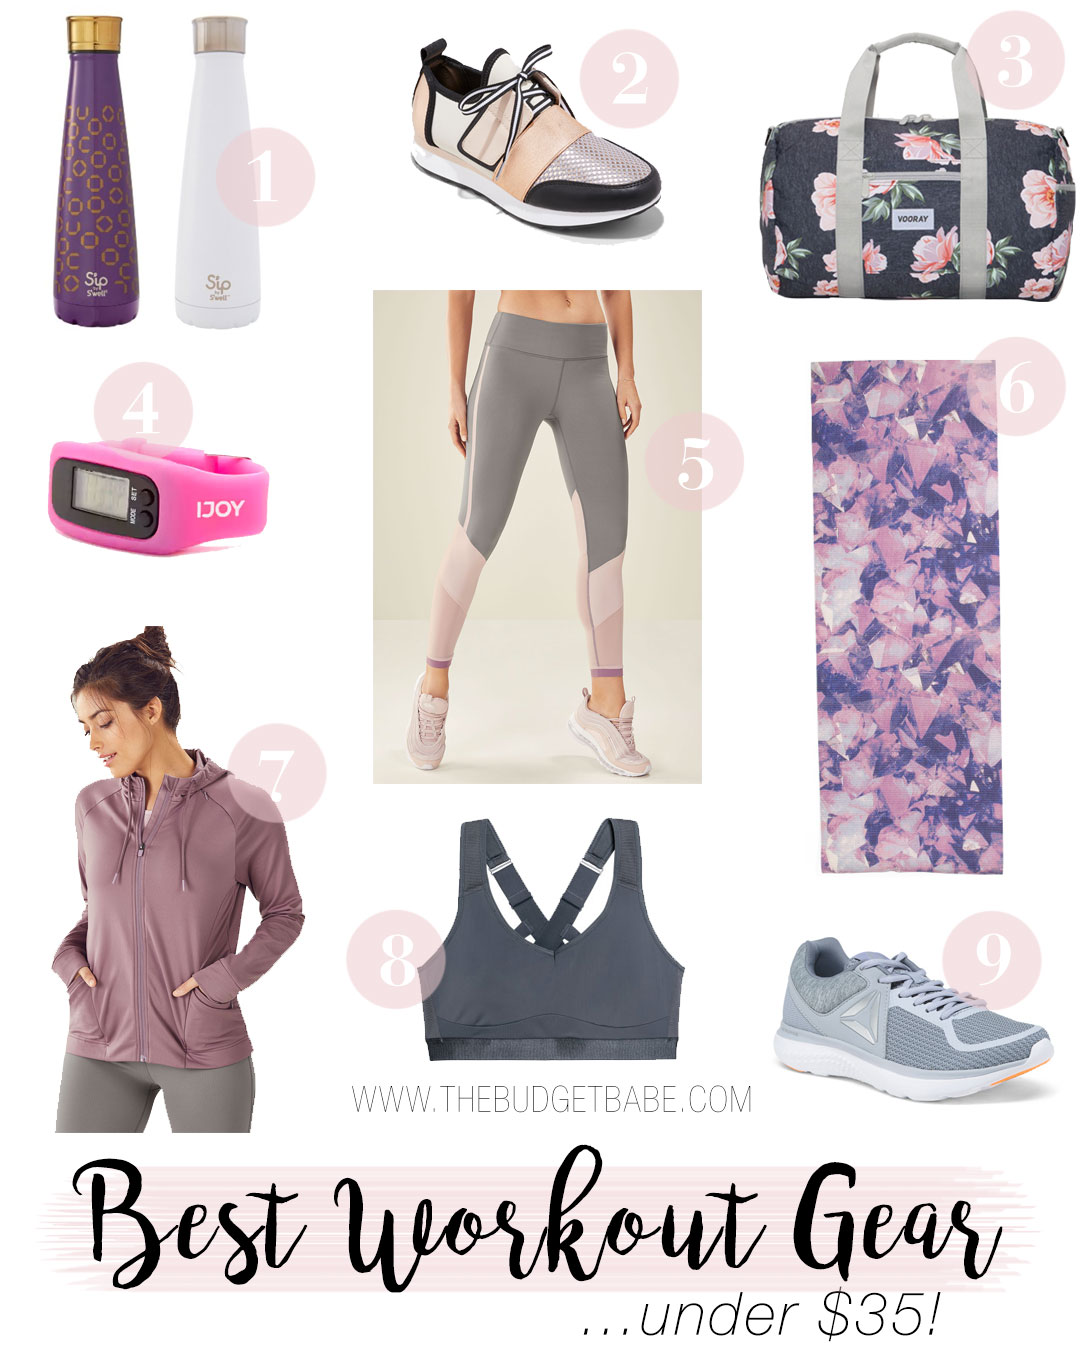 Where to shop for the best workout gear on a budget